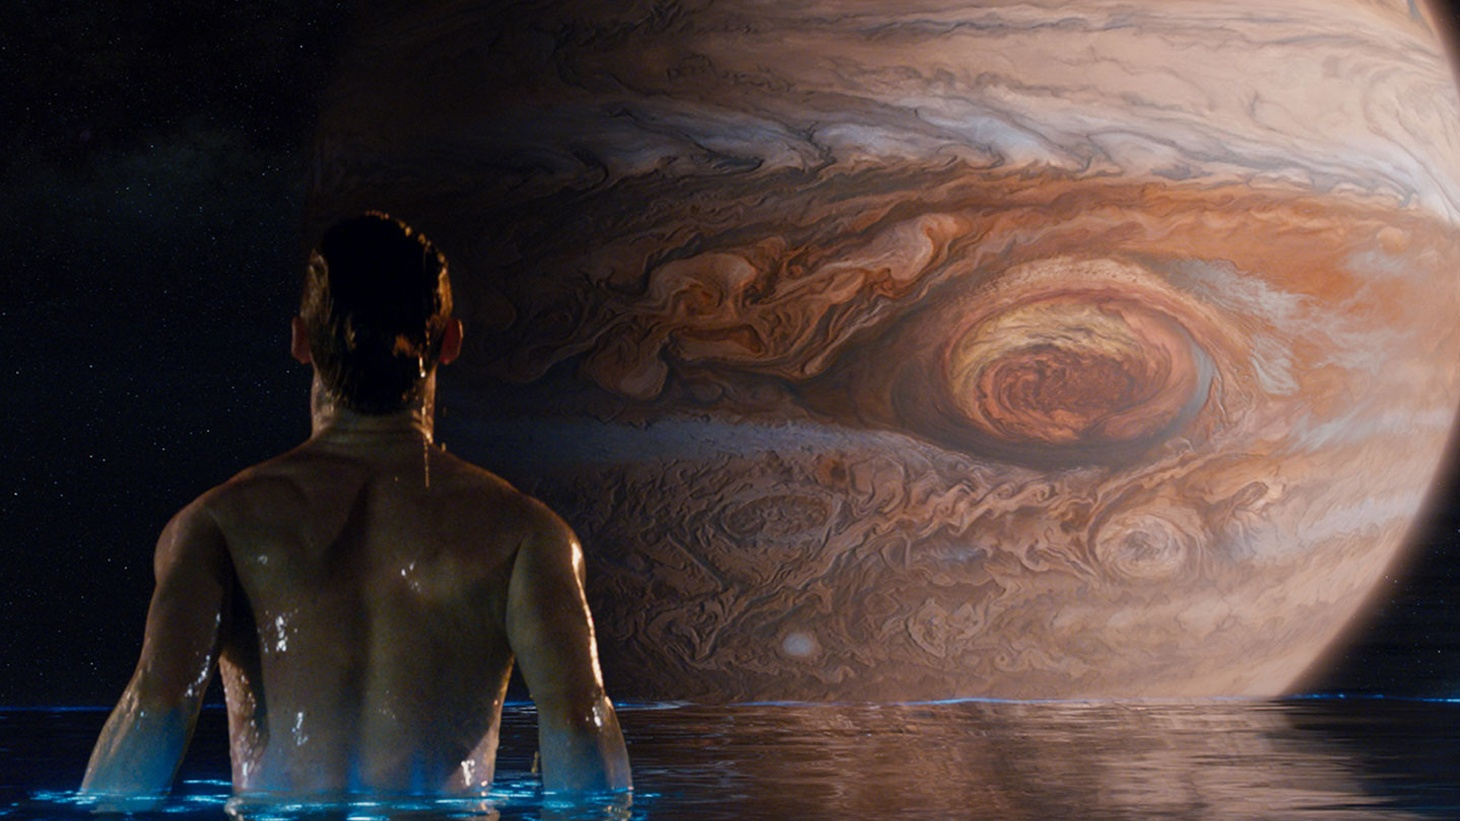 In a momentous conjunction of events,Jupiter Ascending-- the mega-budget sci-fi extravaganza -- is opening around the nation and the world on the very day that Jupiter, the mega-planet, is at its annual opposition to Earth.